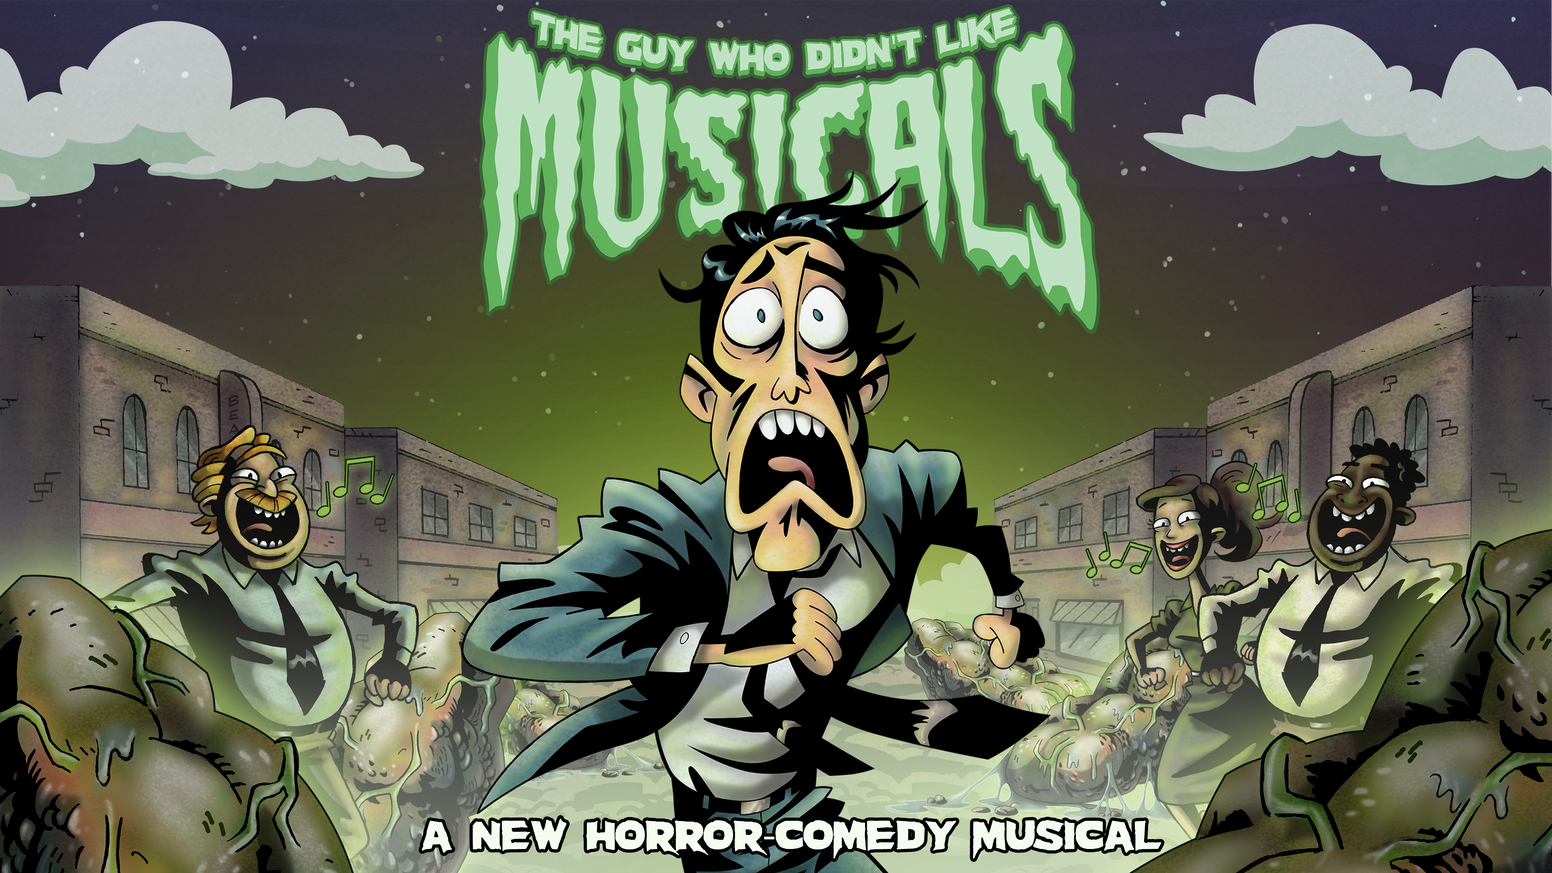 StarKid's 11th stage show, 'The Guy Who Didn't Like Musicals' is a new horror-comedy in which the world is transformed into a musical!